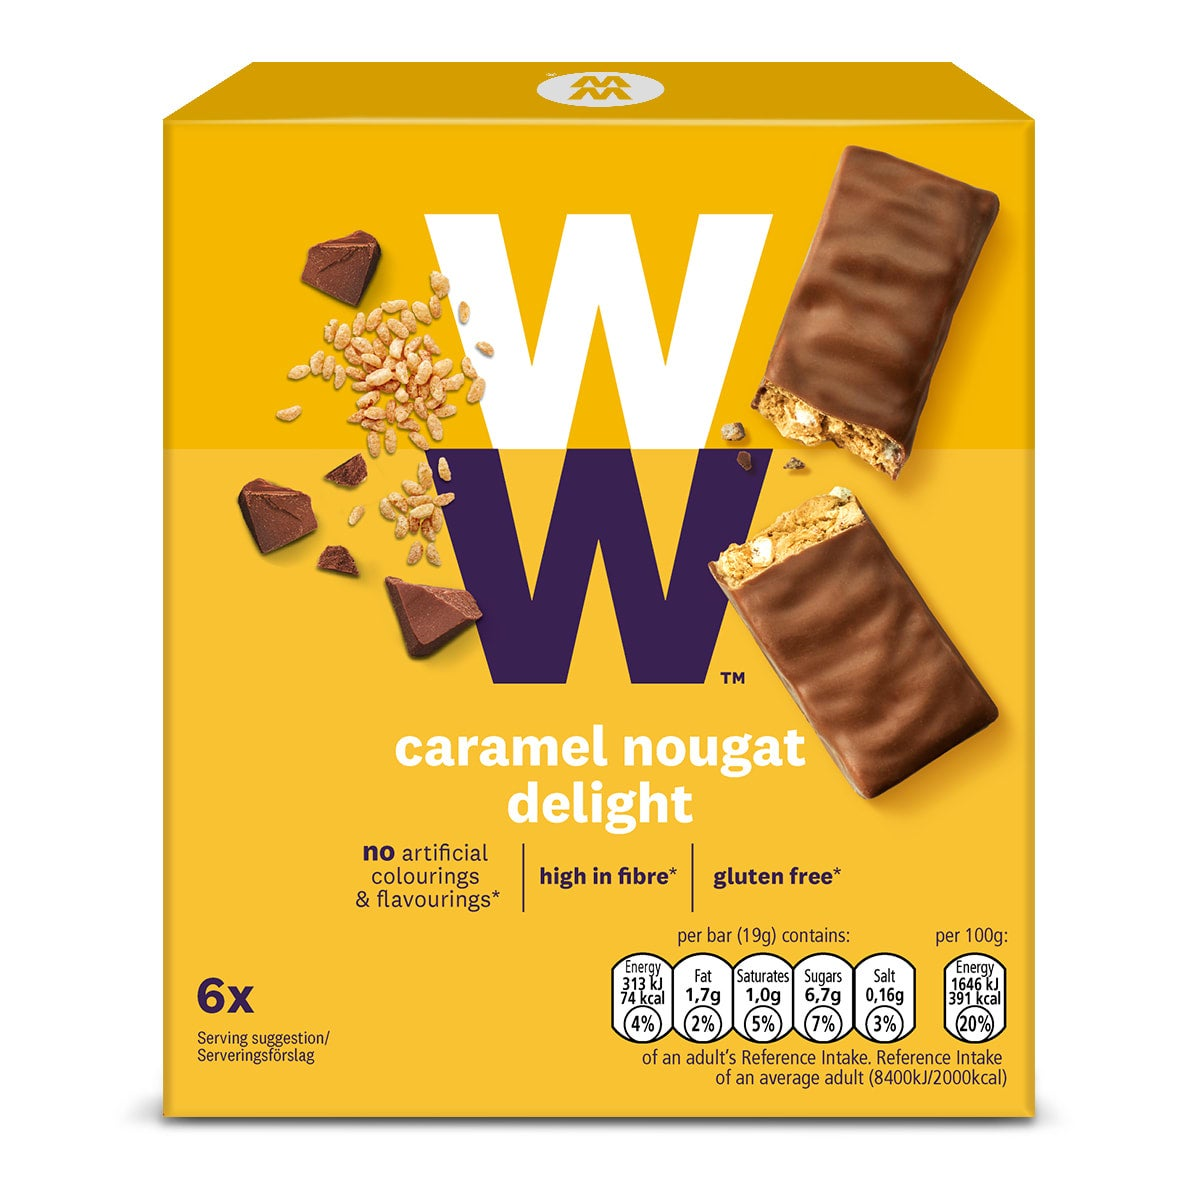 Box of 6, WW Caramel Nougat Delight Bar, chewy caramel nougat, crispy puffed rice, High in fibre, gluten-free,3 SmartPoints values, suitable for vegetarians